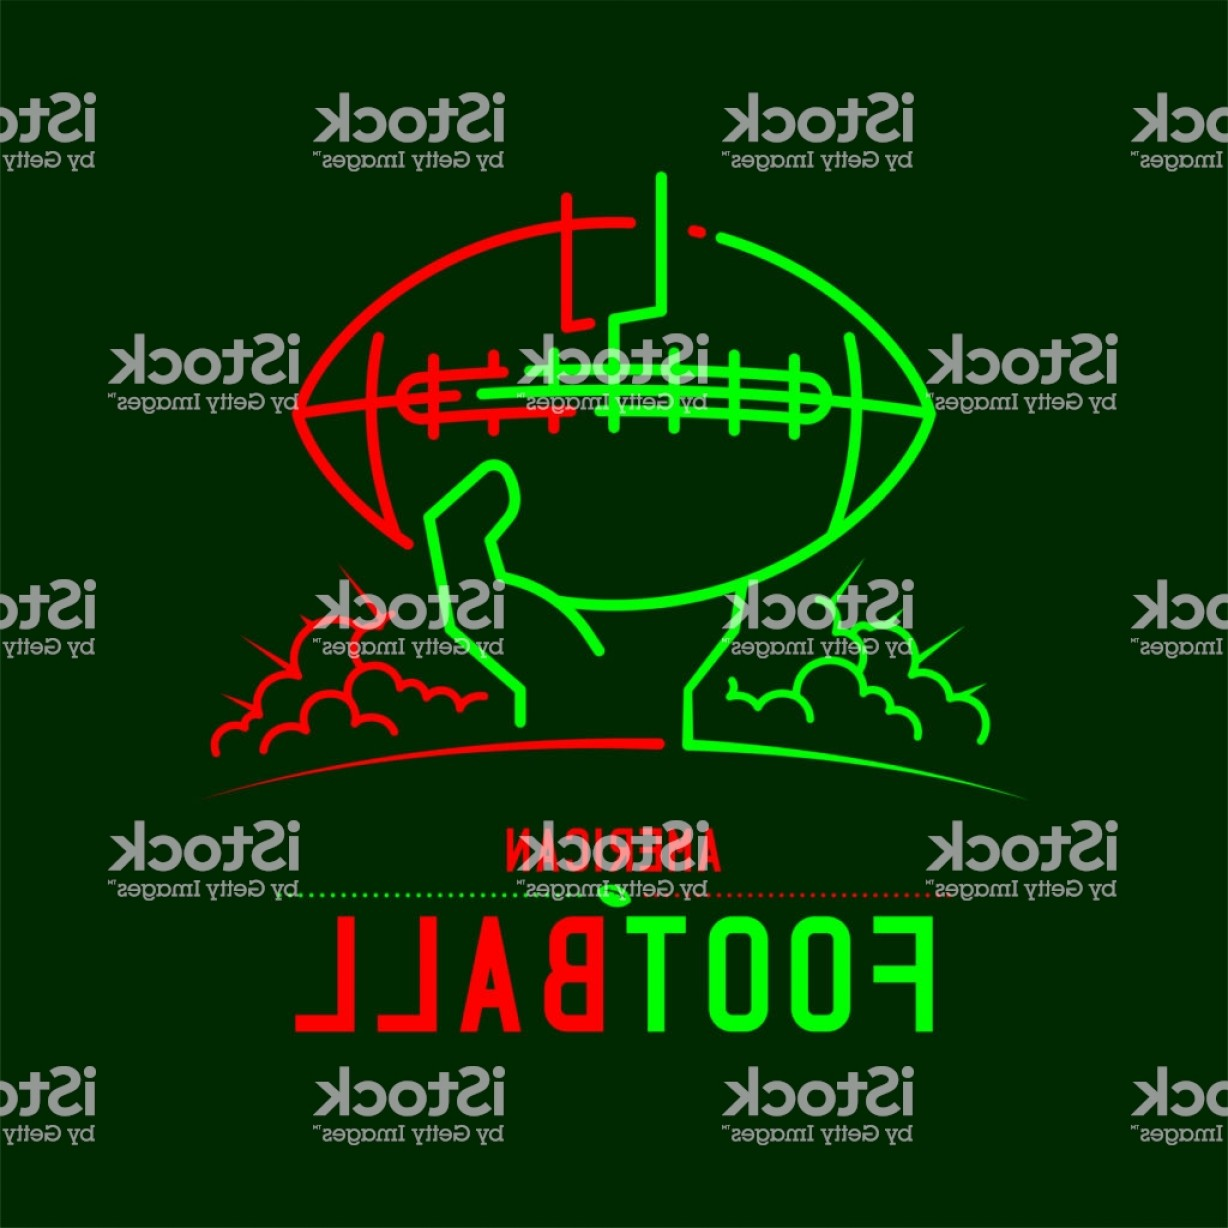 Abstract Football Vector Outline: American Football With Hand Holding Ball And Goal Post Icon Outline Stroke Set Dash Gm